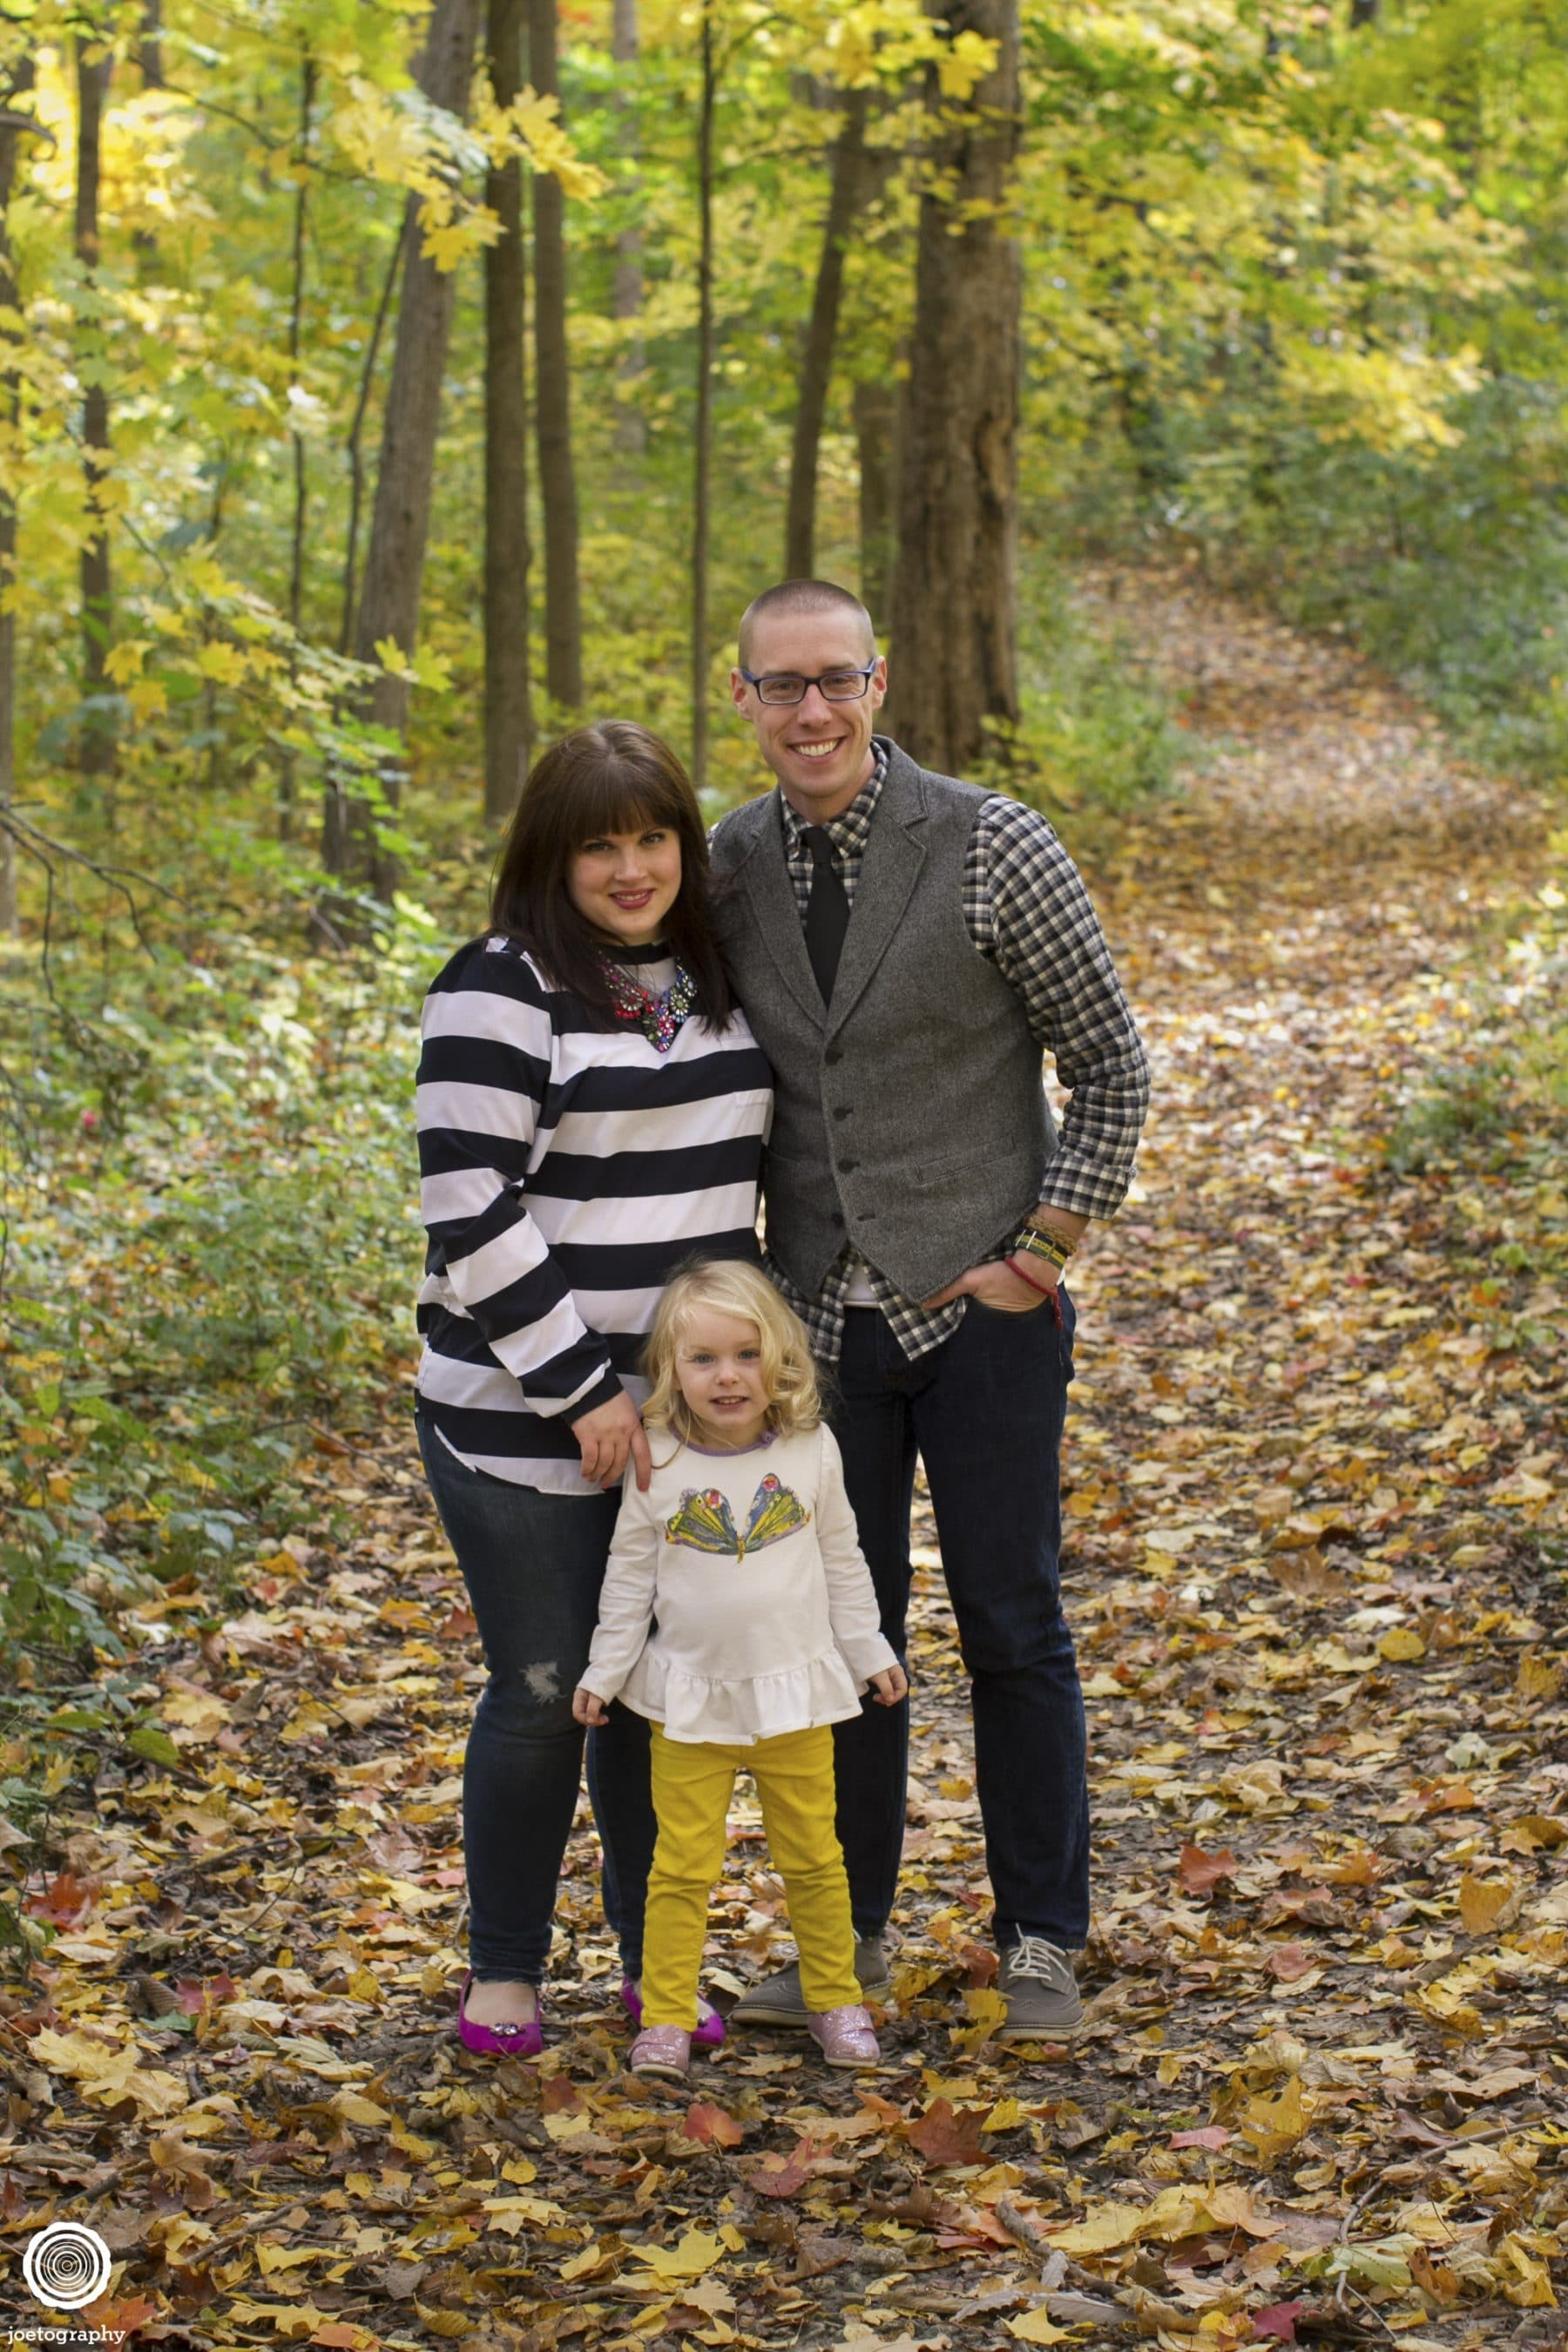 woestman-family-photographs-indianapolis-butler-university-5